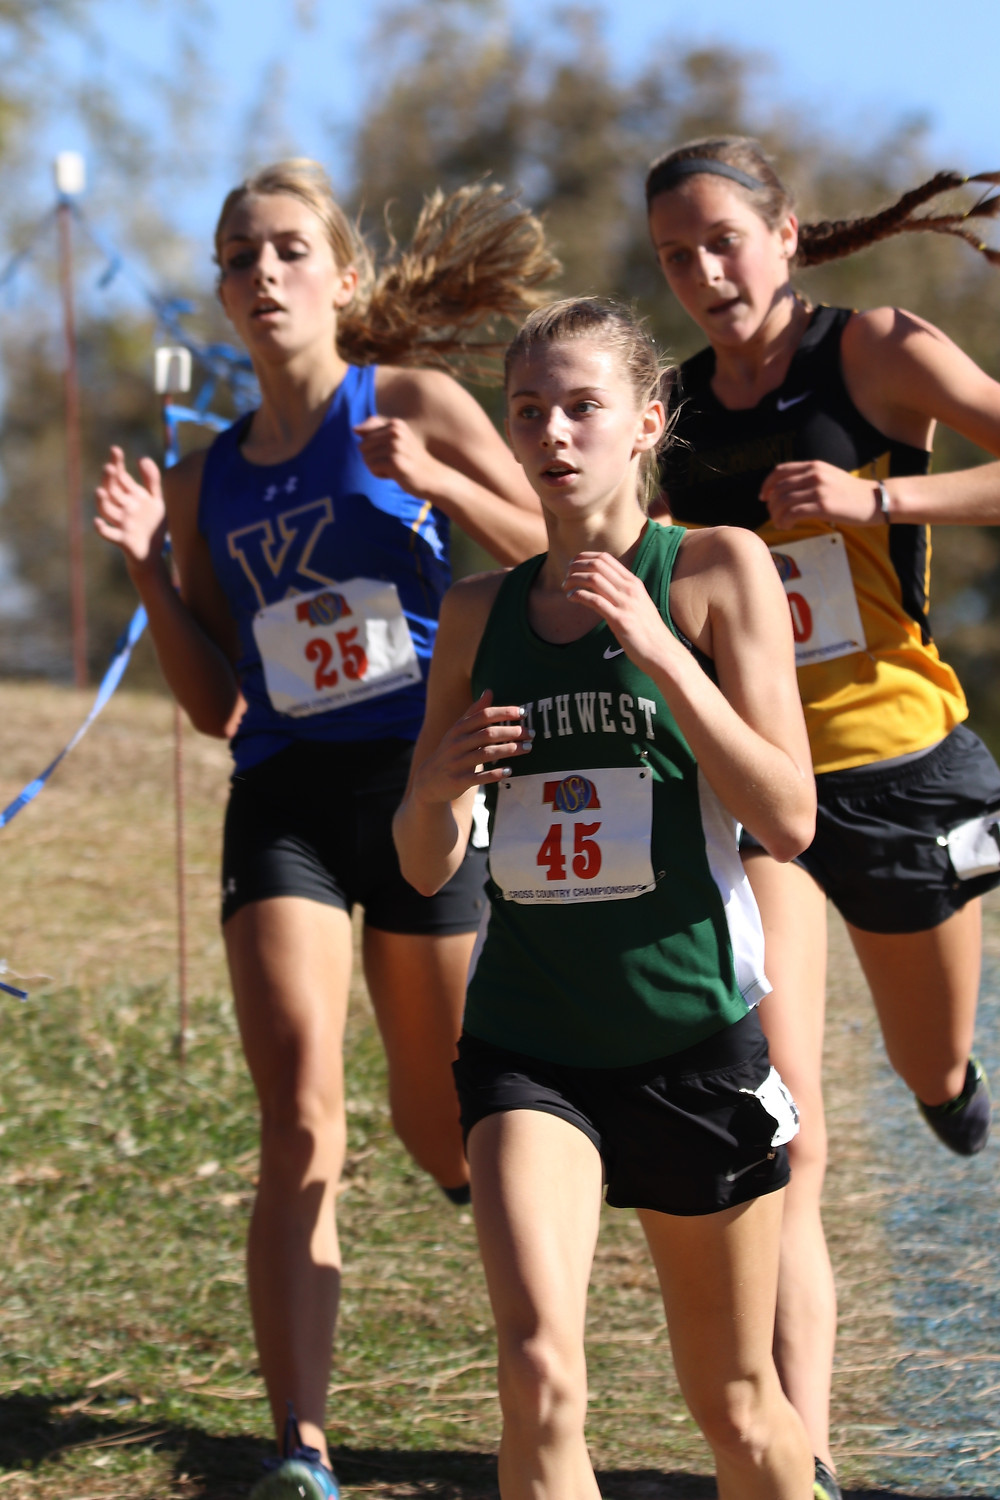 Kate Dilsaver, 2018 State XC meet